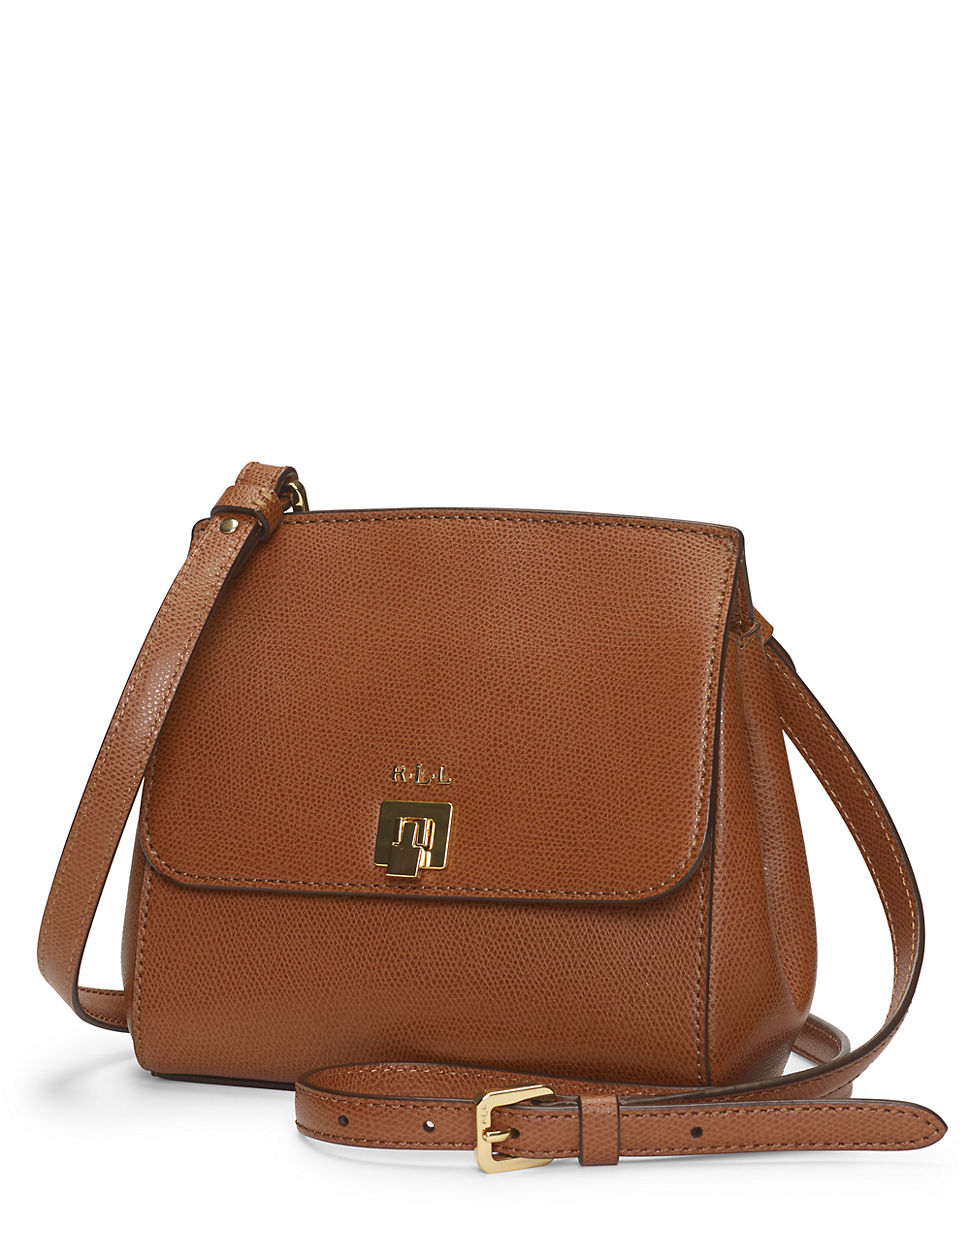 Lauren Ralph Lauren Väskor : Lyst lauren by ralph whitby leather crossbody bag